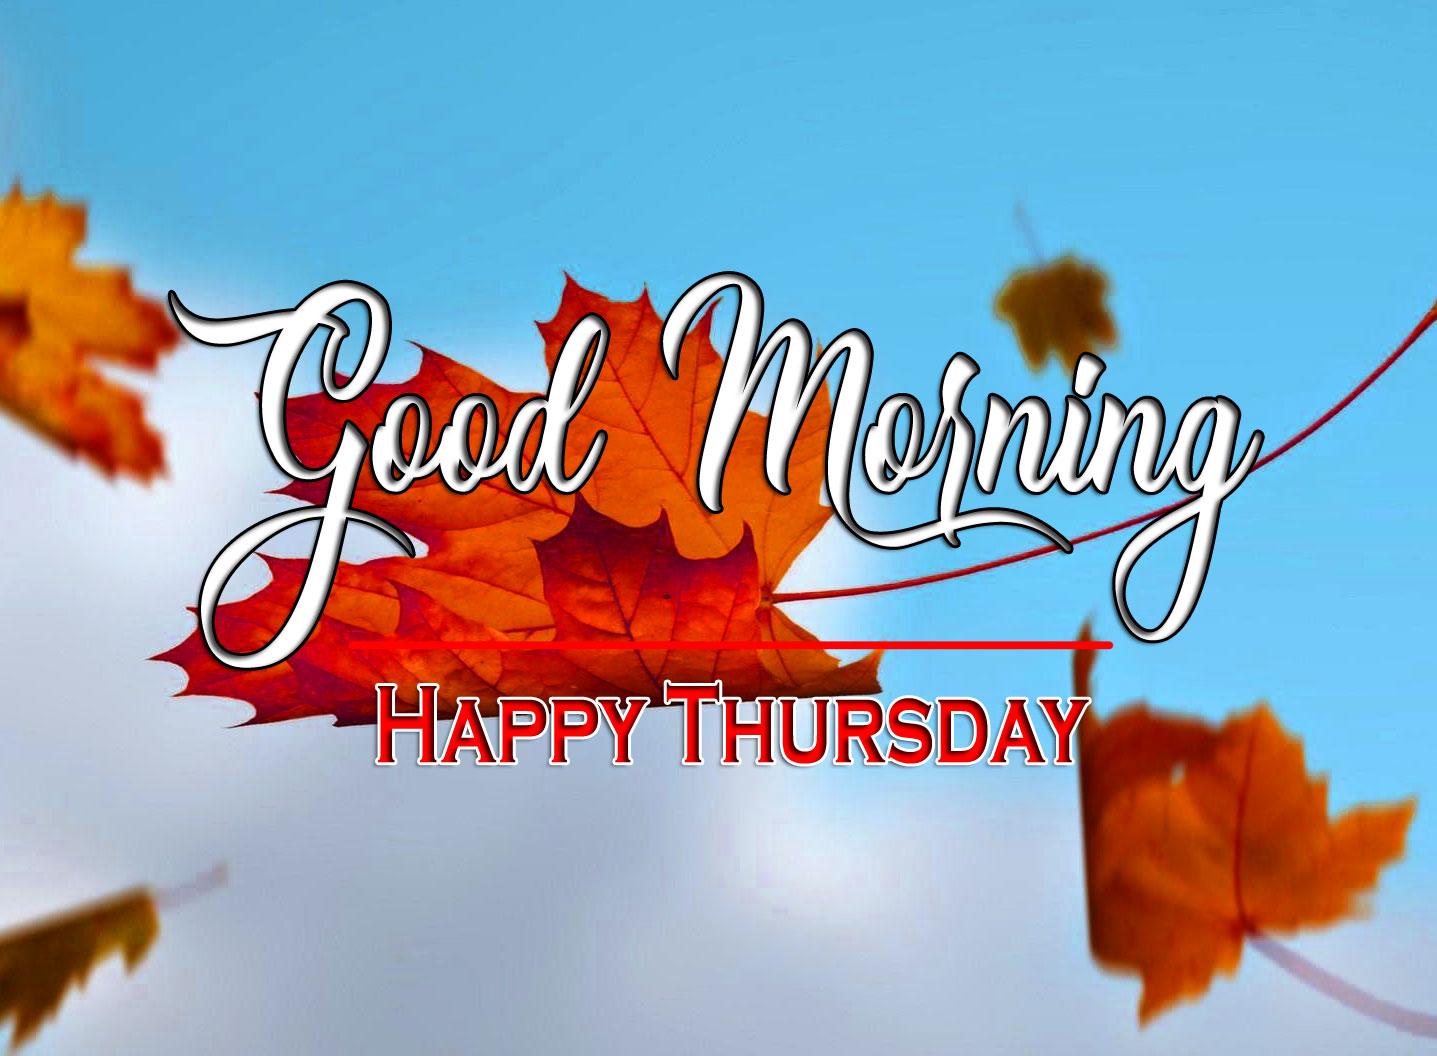 Free HD New thursday morning Images